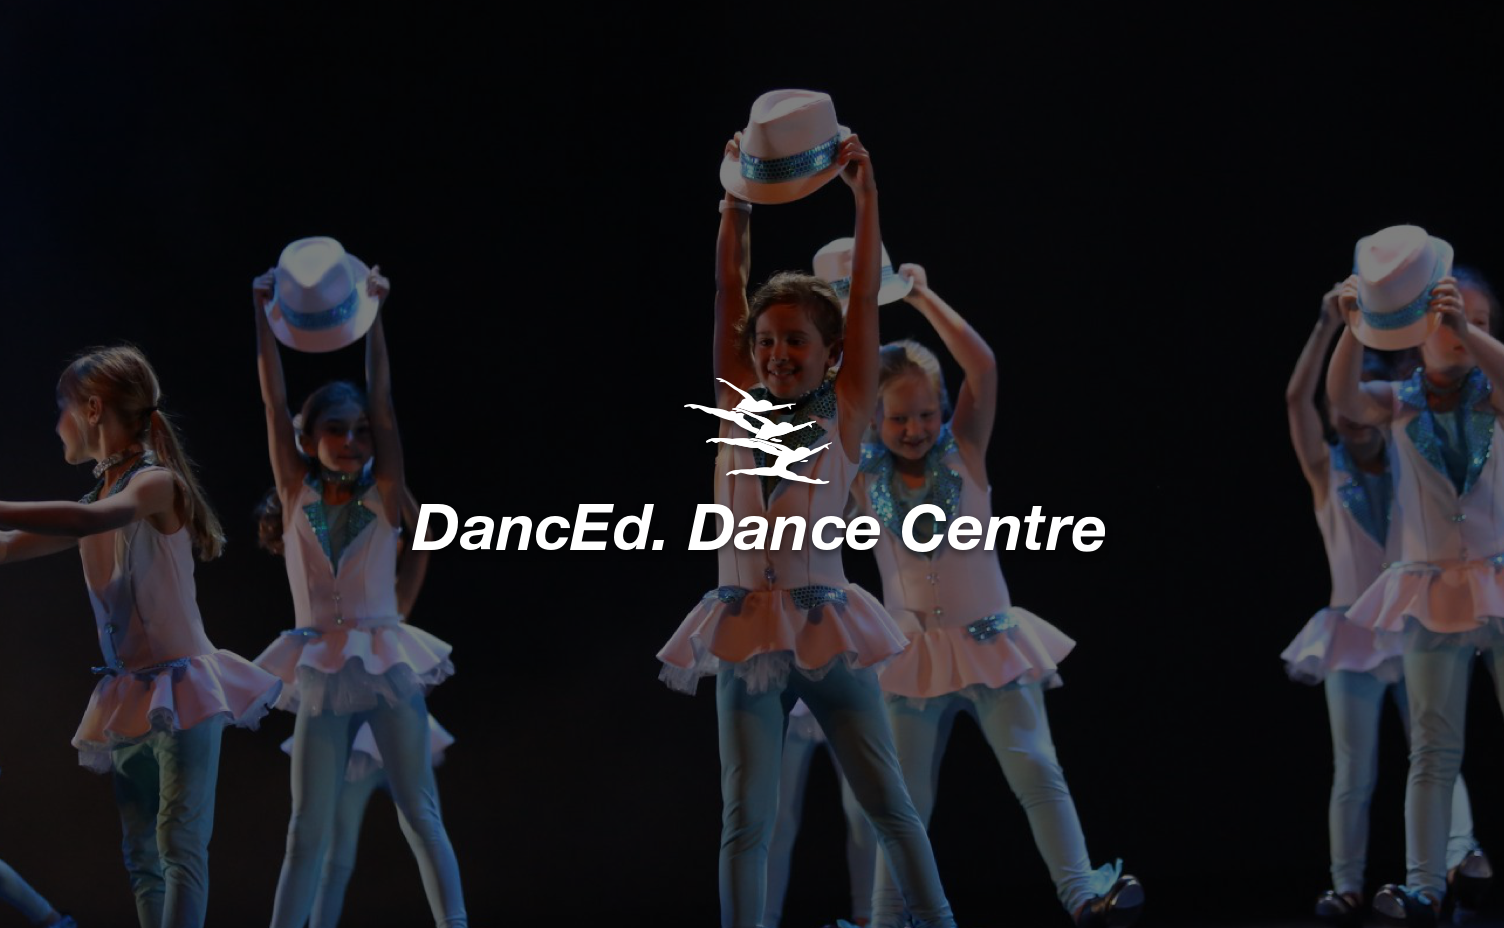 DANCED. DANCE CENTRE